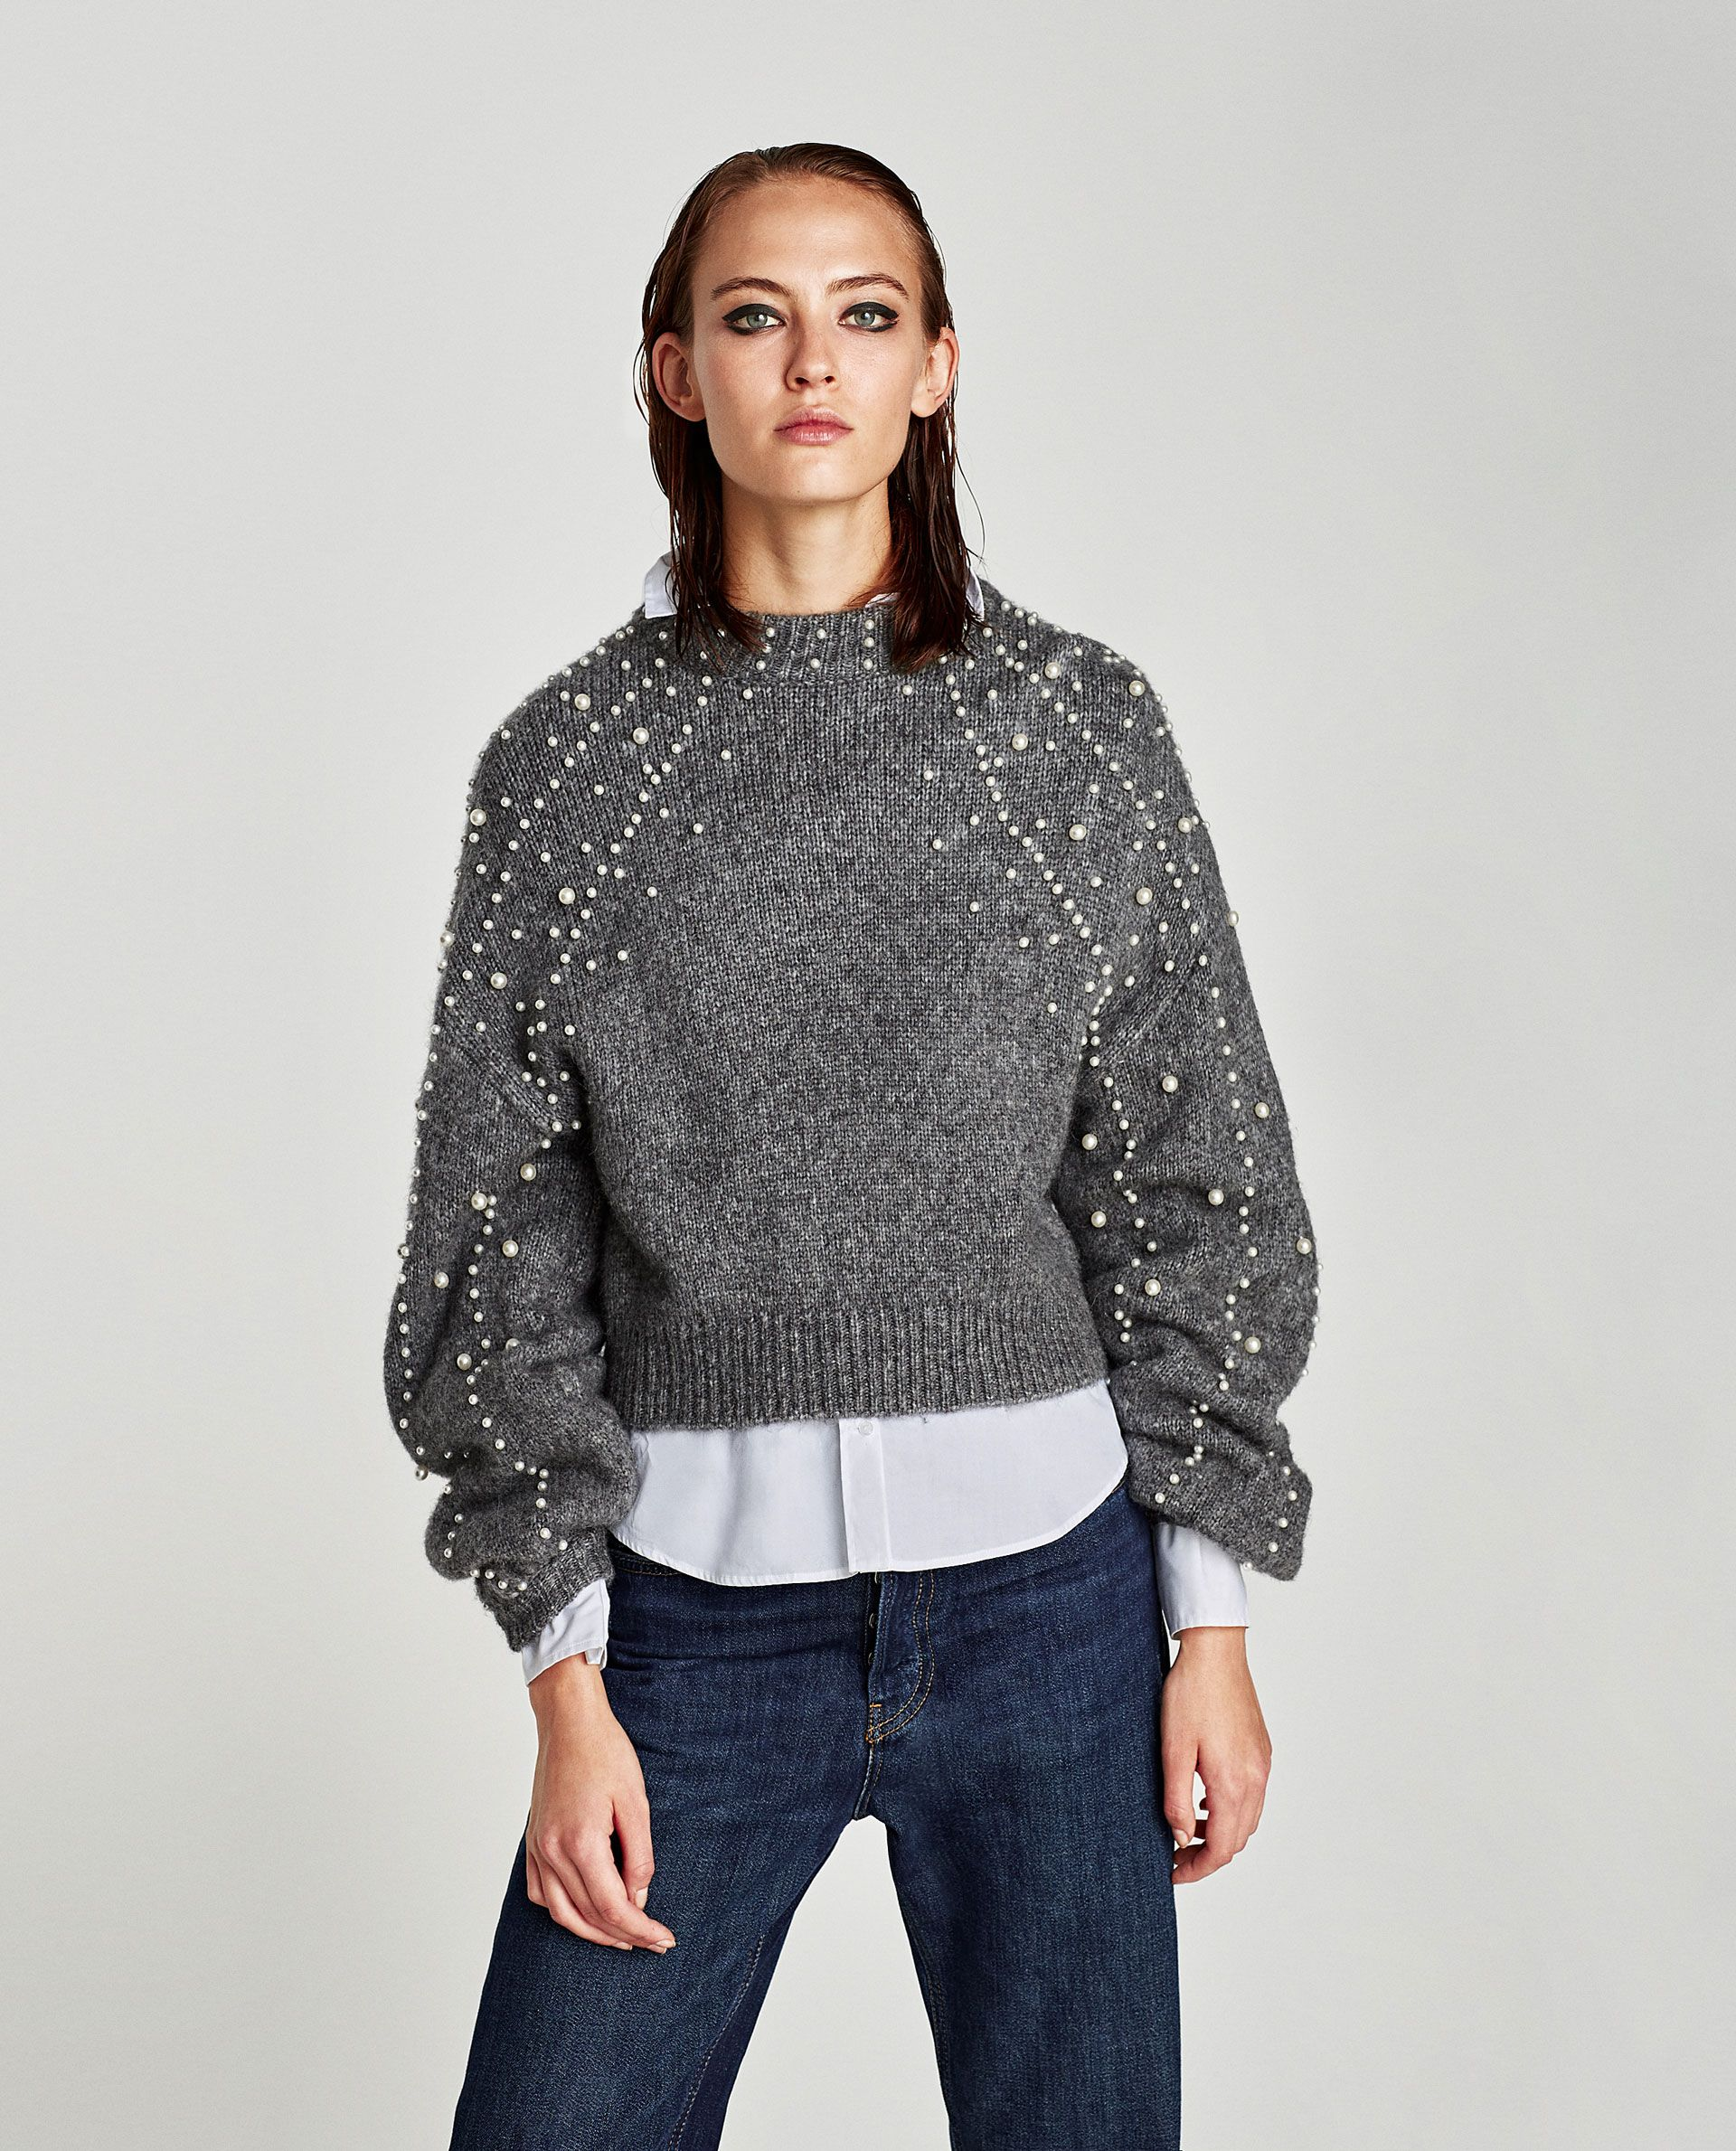 Zara Crop Top With Faux Pearl Buttons